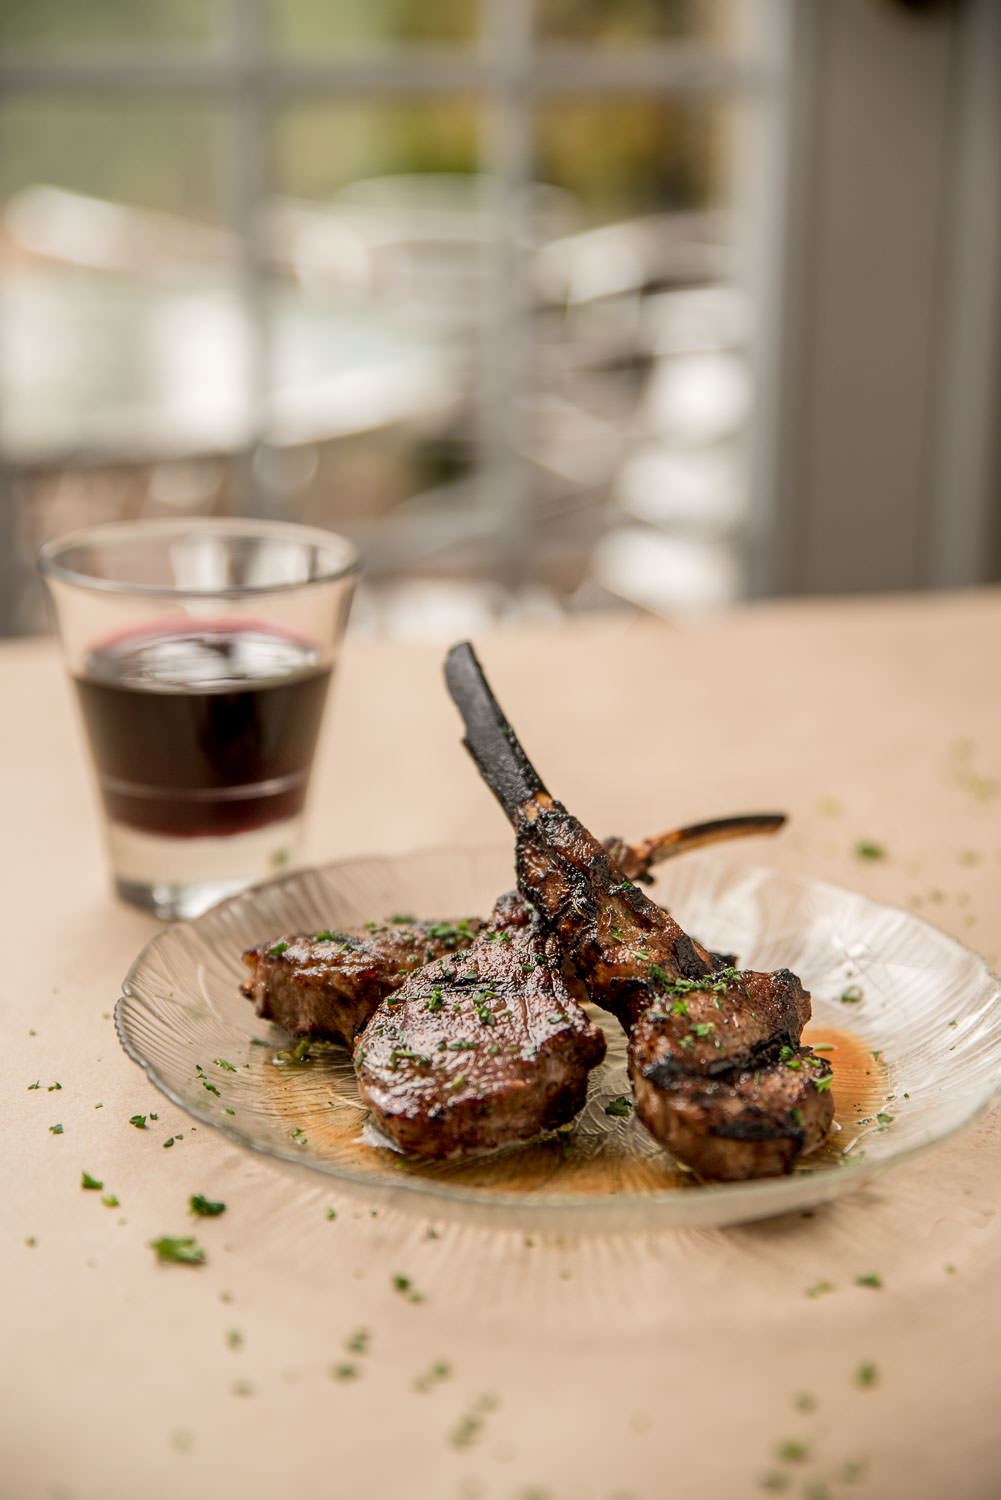 Chuletas de cordero a la parrilla - Baby lamb chops on the grill